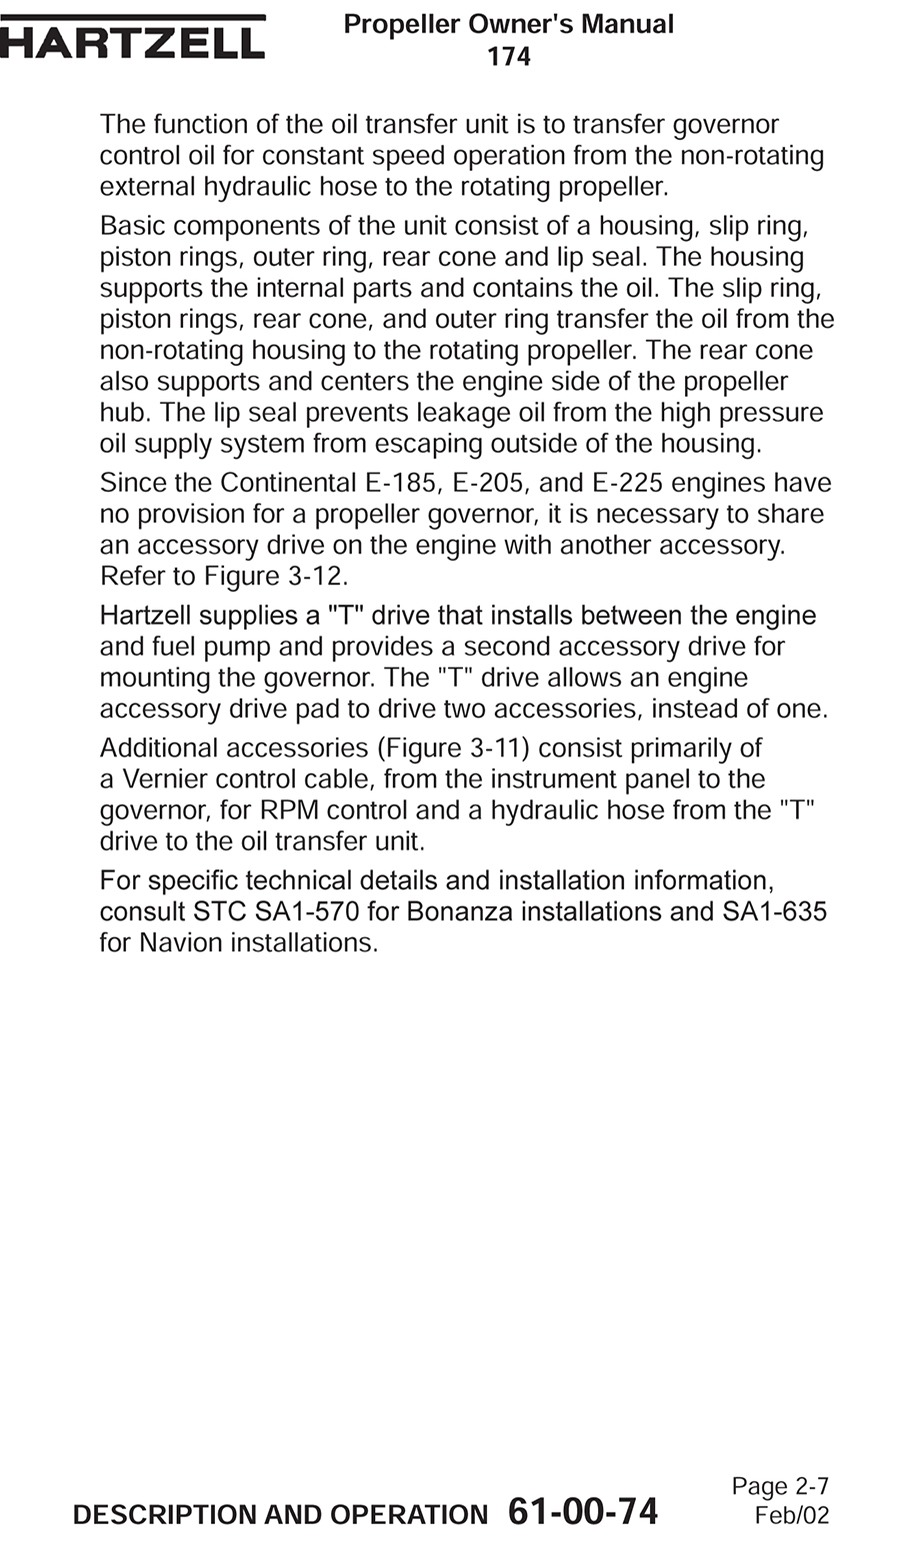 Hartzell Prop Manual 2010 page45